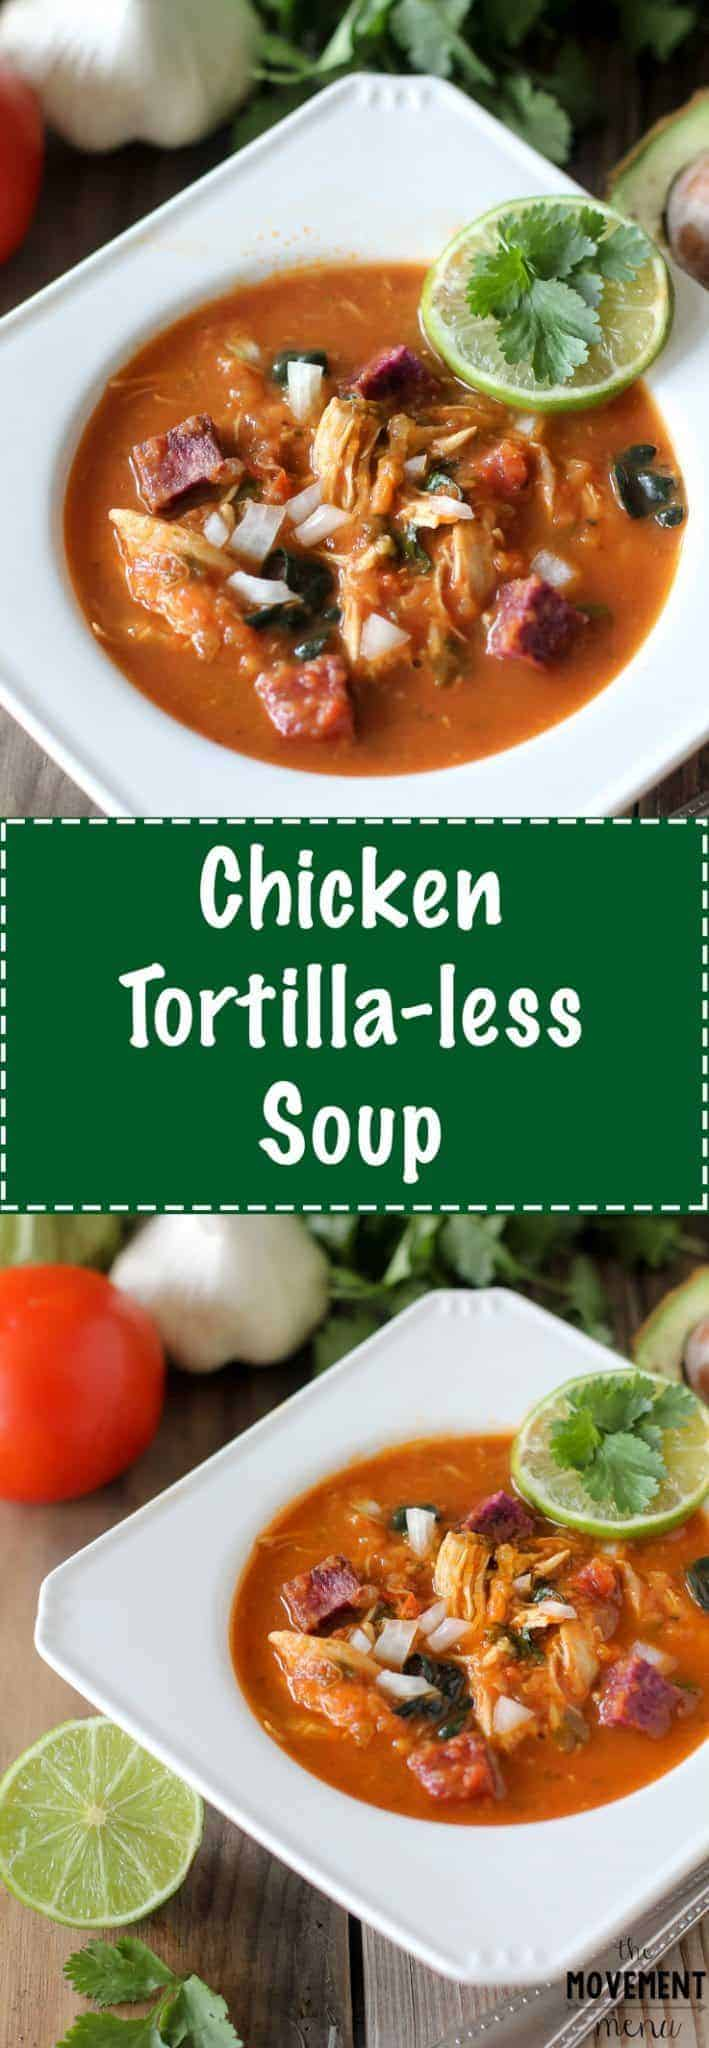 This Easy Chicken Tortilla-less Soup is the perfect recipe to kick off the New Year! It's full of nutrients and flavor and will keep you warm throughout the rest of the winter... TheMovementMenu.com